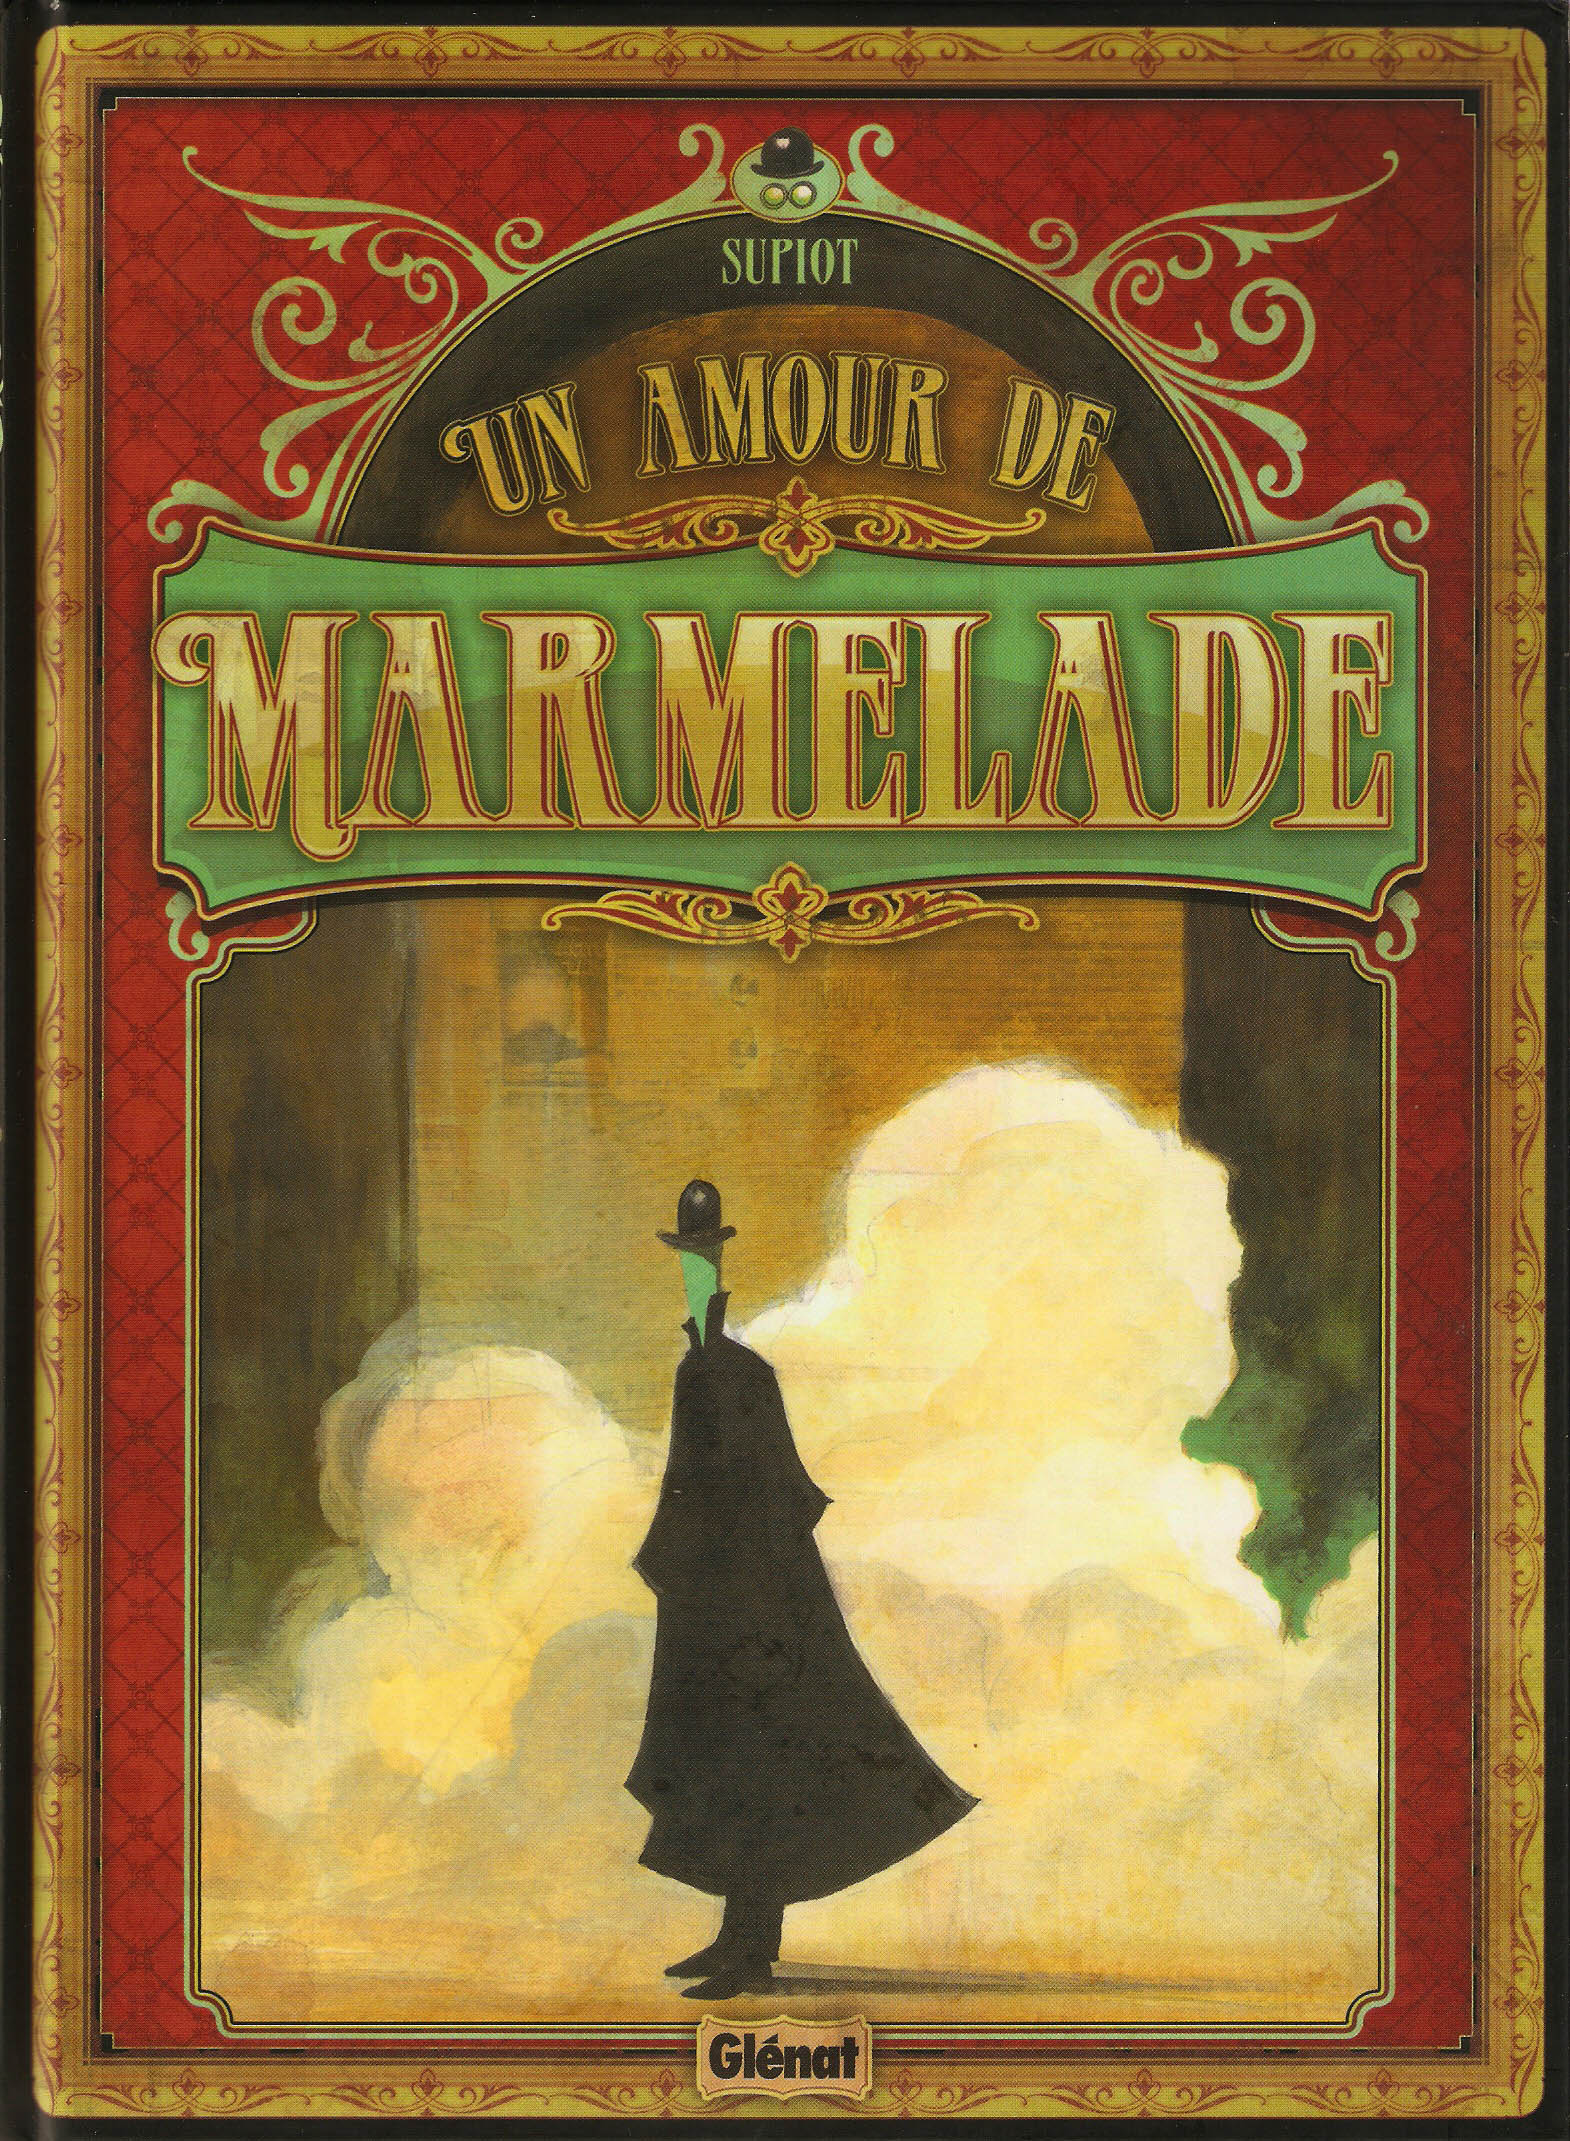 Un amour de Marmelade - one shot